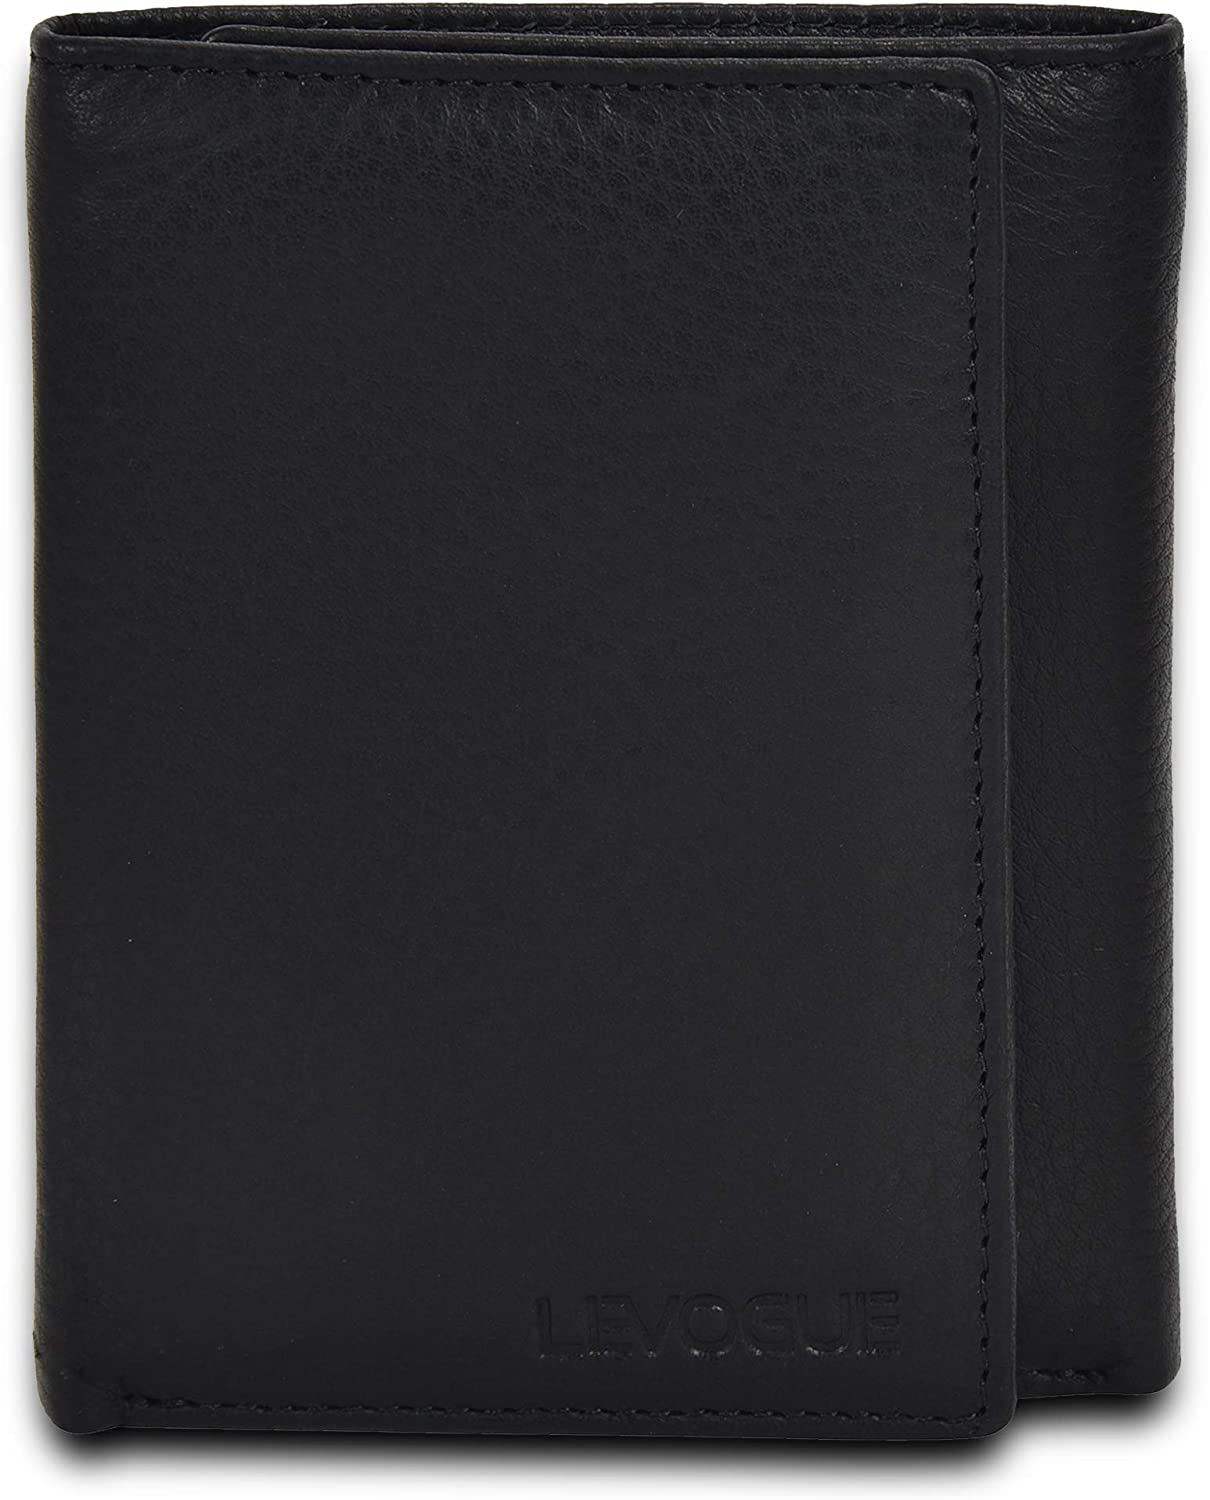 Genuine Leather RFID Blocking Slim Trifold Wallet for Men with 7 Cards+1 ID Window+2 Note Compartments